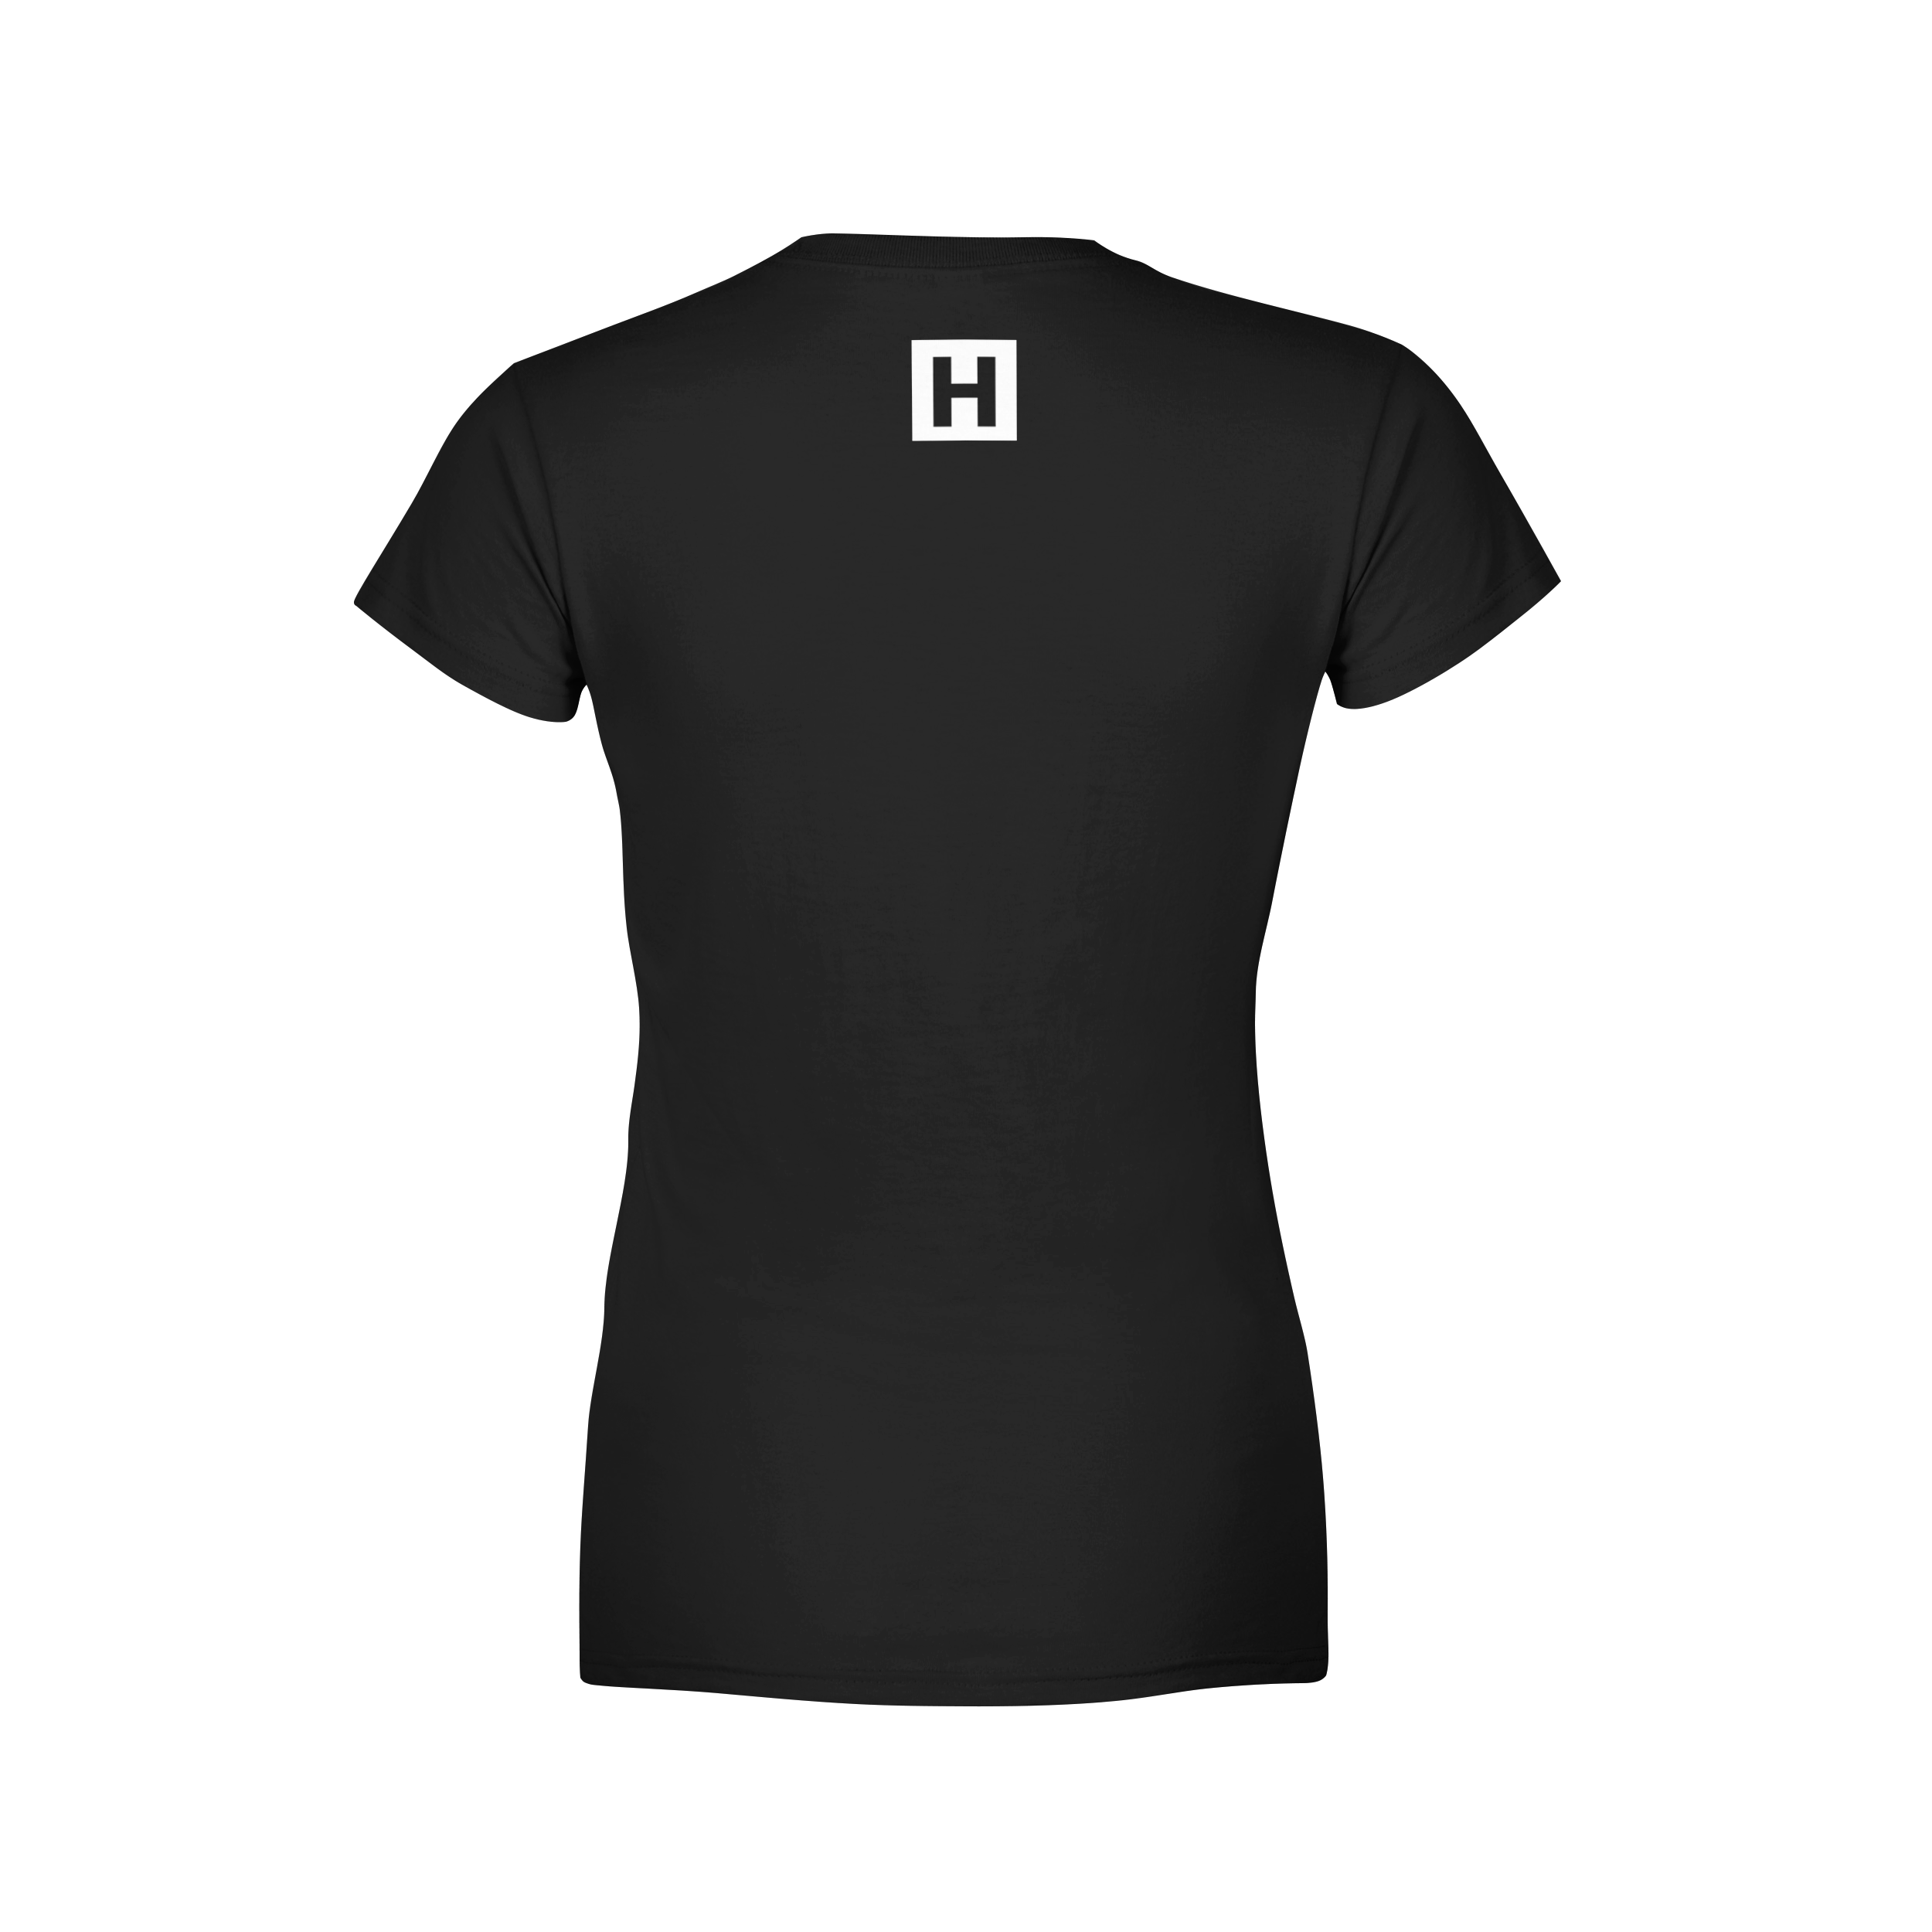 Le hustle women 39 s tee shirt black hstlr wear for Womens black tee shirt